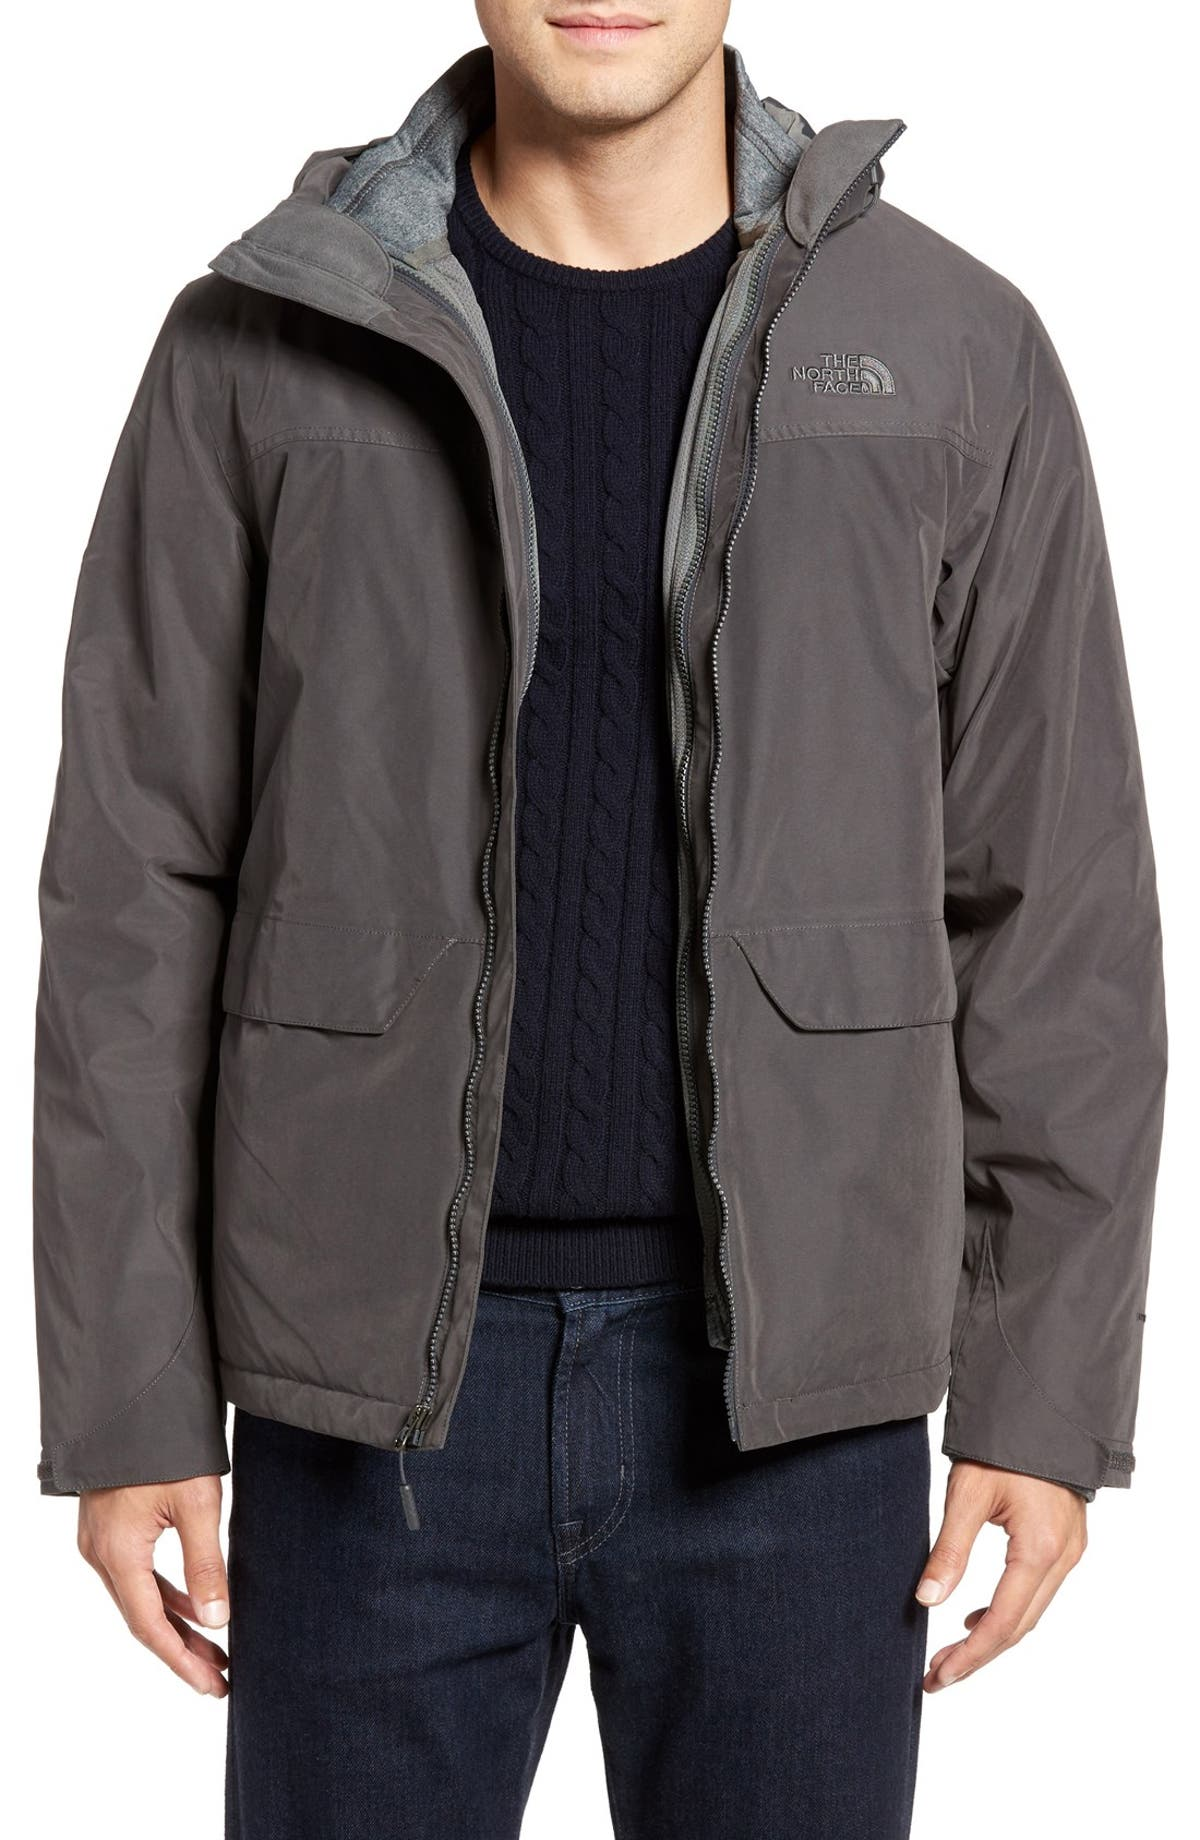 aa25133ba3 The North Face Canyonlands Triclimate Heatseeker™ Insulated 3-in-1 Jacket